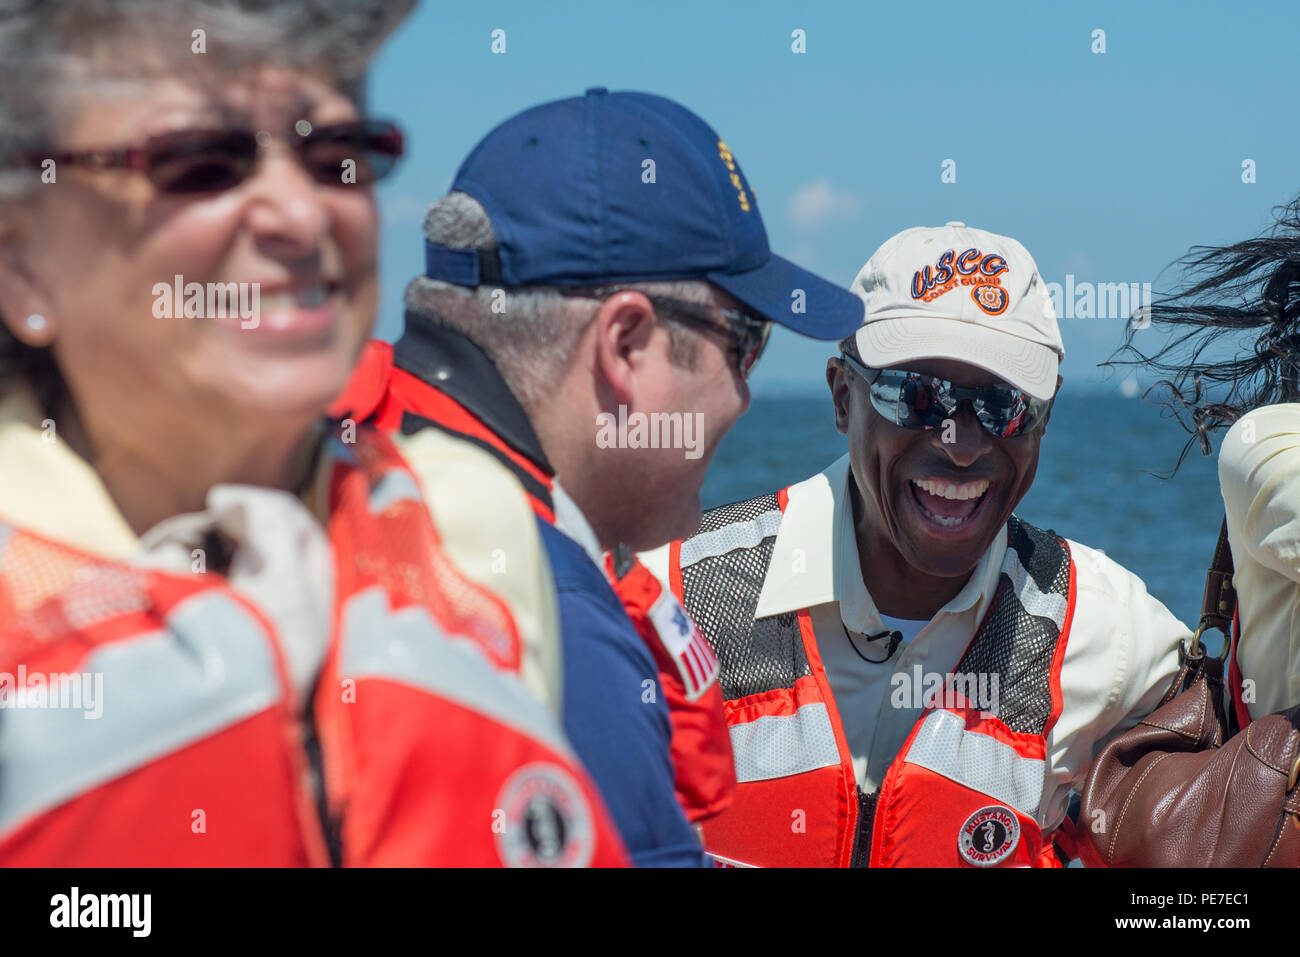 John White shares a laugh with Petty Officer 1st Class James Ables, the public affairs officer at Coast Guard Station Annapolis, on their ride out to the Thomas Point Shoal Lighthouse, Sept. 9, 2015. After his tour aboard the Chincoteague, White was transferred to Annapolis, where, after a year, he moved up to Petty Officer 2nd class and was assigned to be the officer-in-charge of the lighthouse. (U.S. Coast Guard photo by Petty Officer 2nd Class David R. Marin) - Stock Image